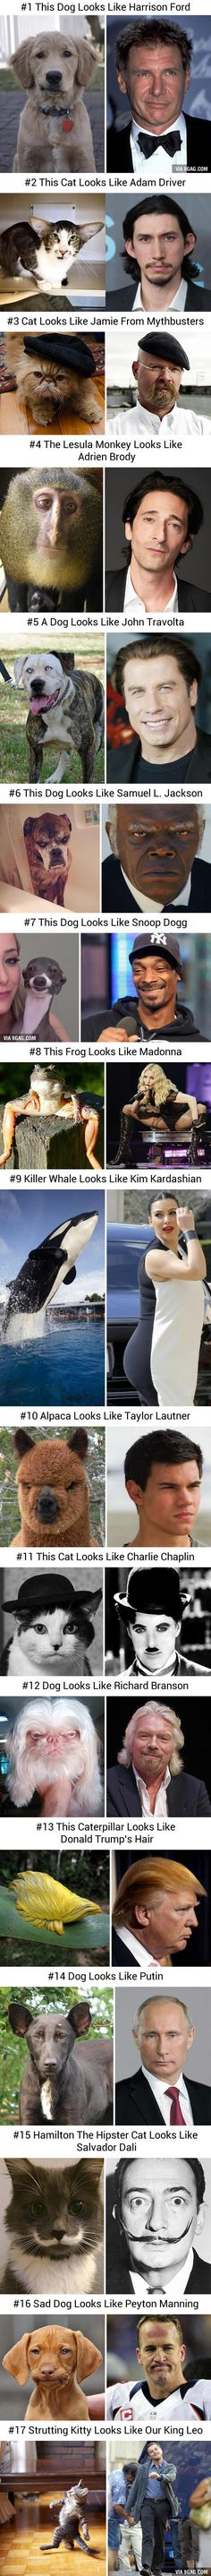 17 Best Look Like Pictures you ever seen: Animals vs Celebrities and Famous People - funny photo hilarious Animal Jokes, Funny Animal Memes, Cute Funny Animals, Funny Animal Pictures, Funny Cute, Really Funny, Funny Photos, The Funny, Funny Jokes